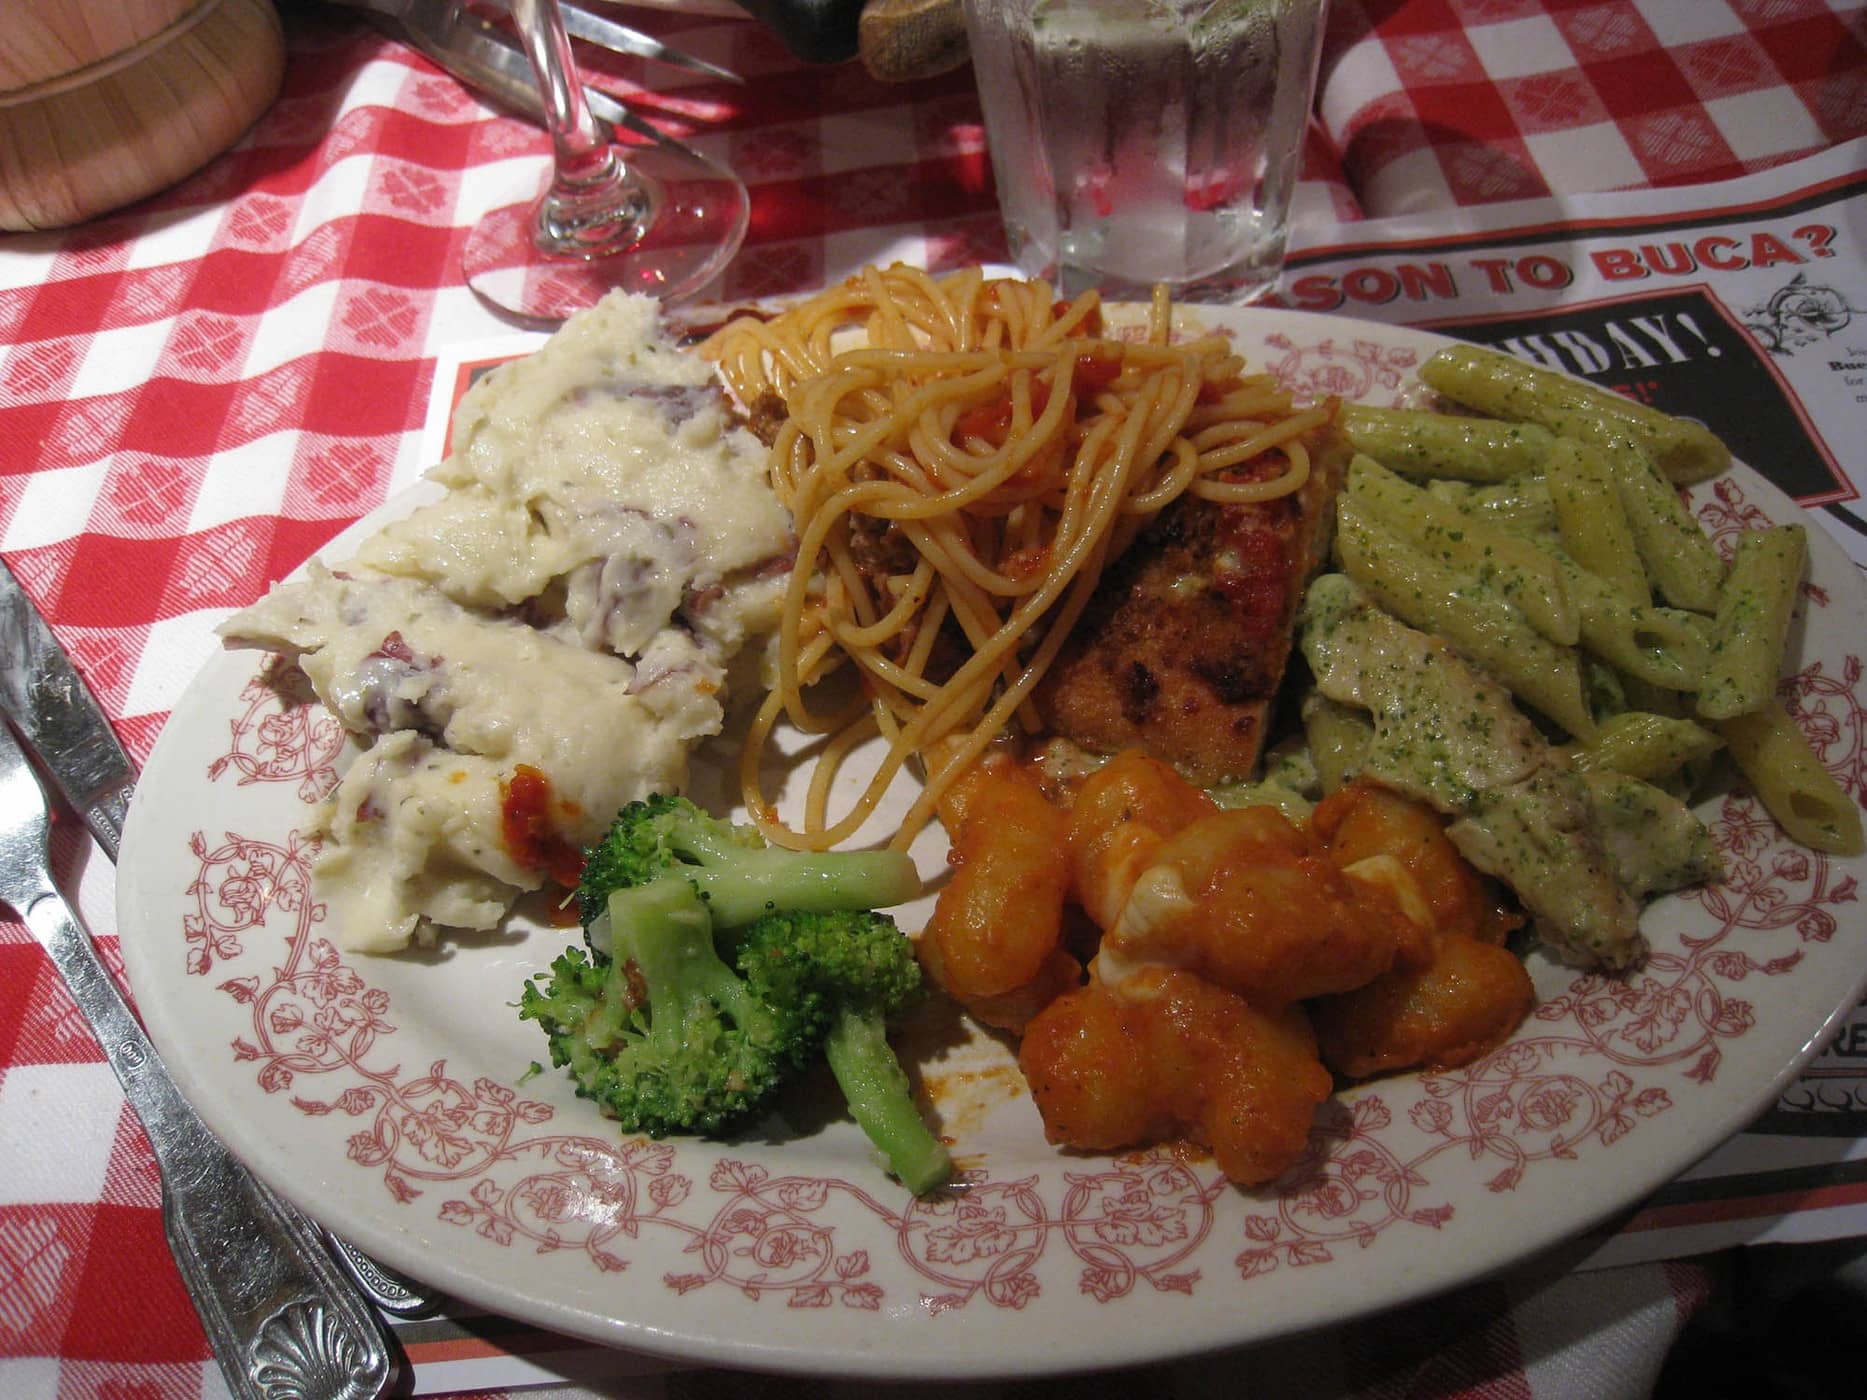 A plate full of food at Bucca di Beppo